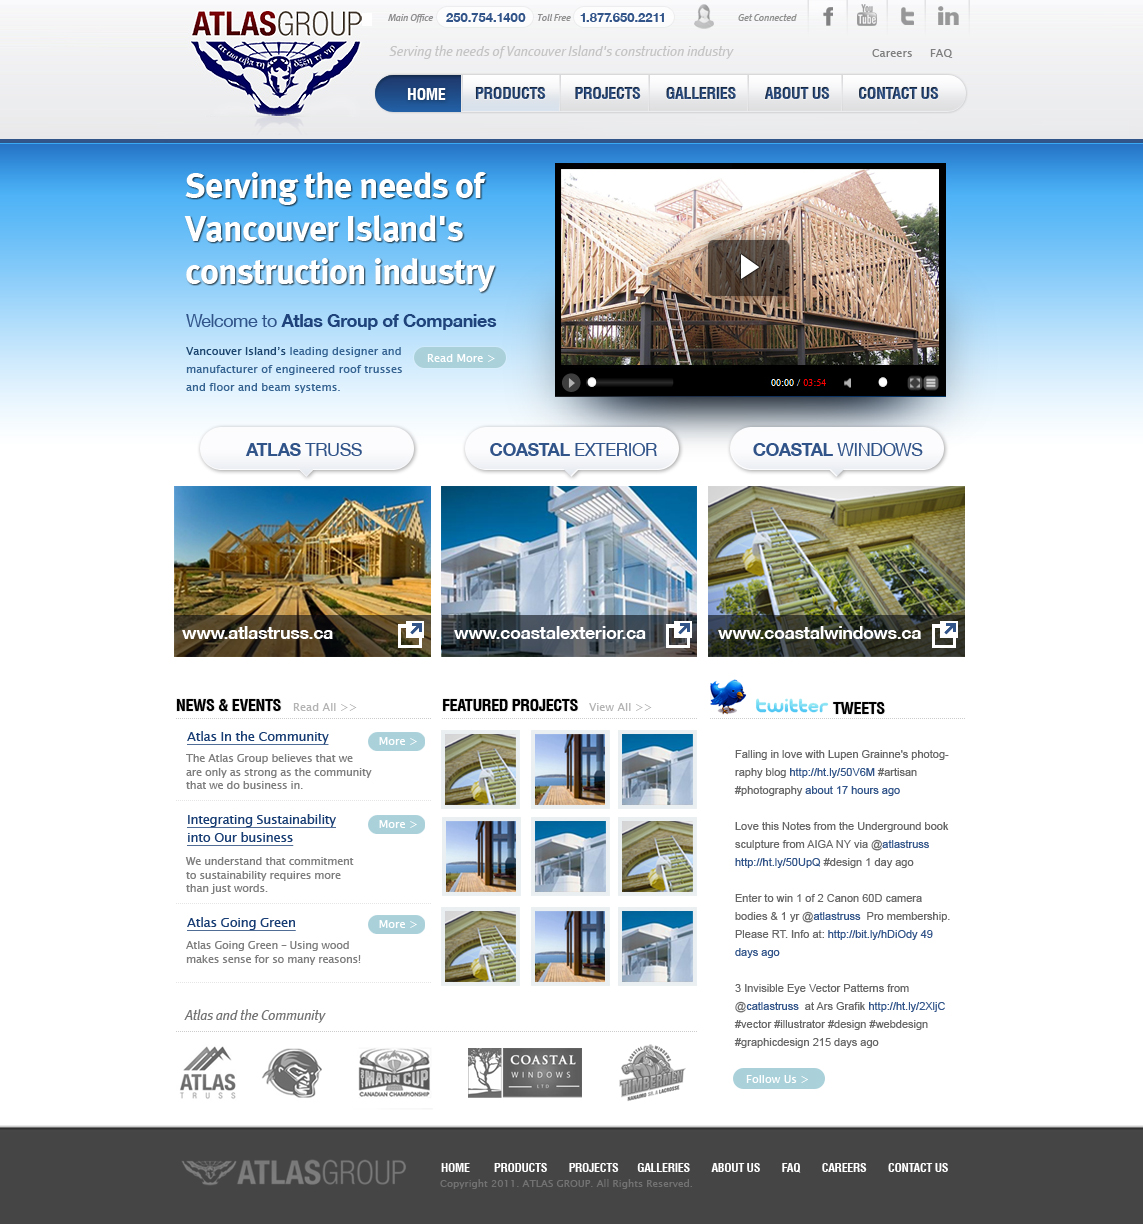 Web Page Design by red46 - Entry No. 83 in the Web Page Design Contest The Atlas Group Website.